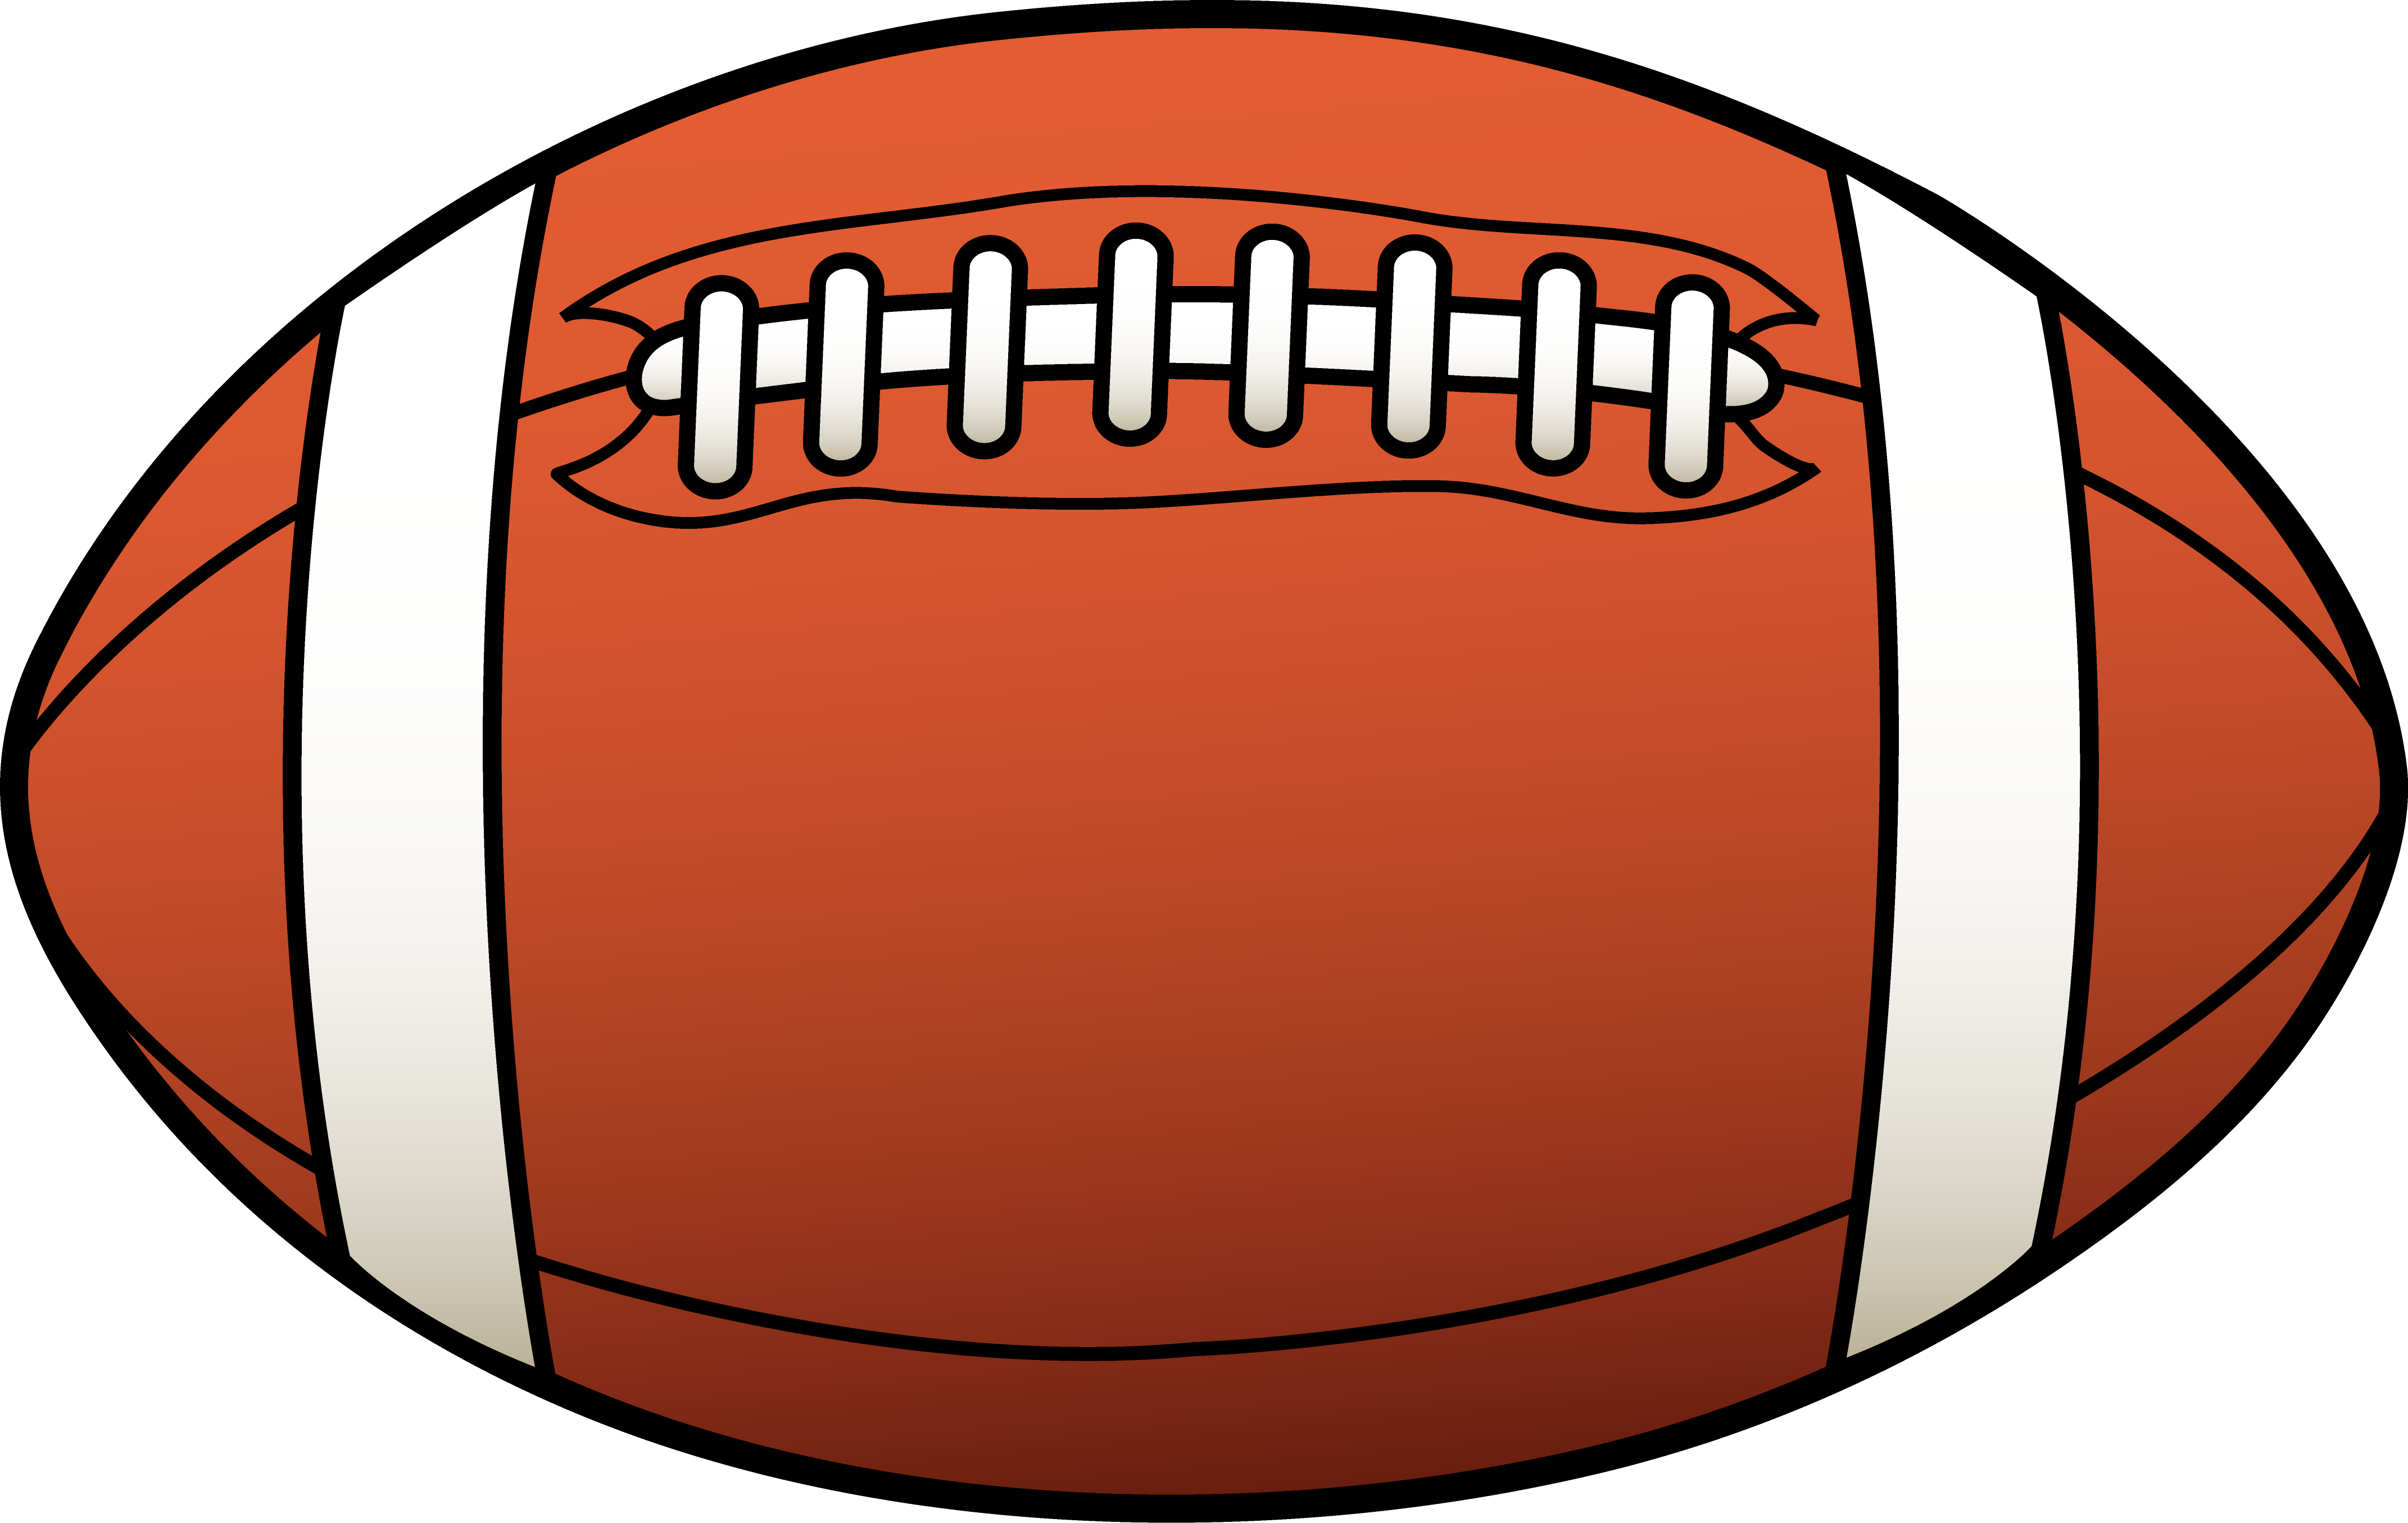 Football clipart free images 3